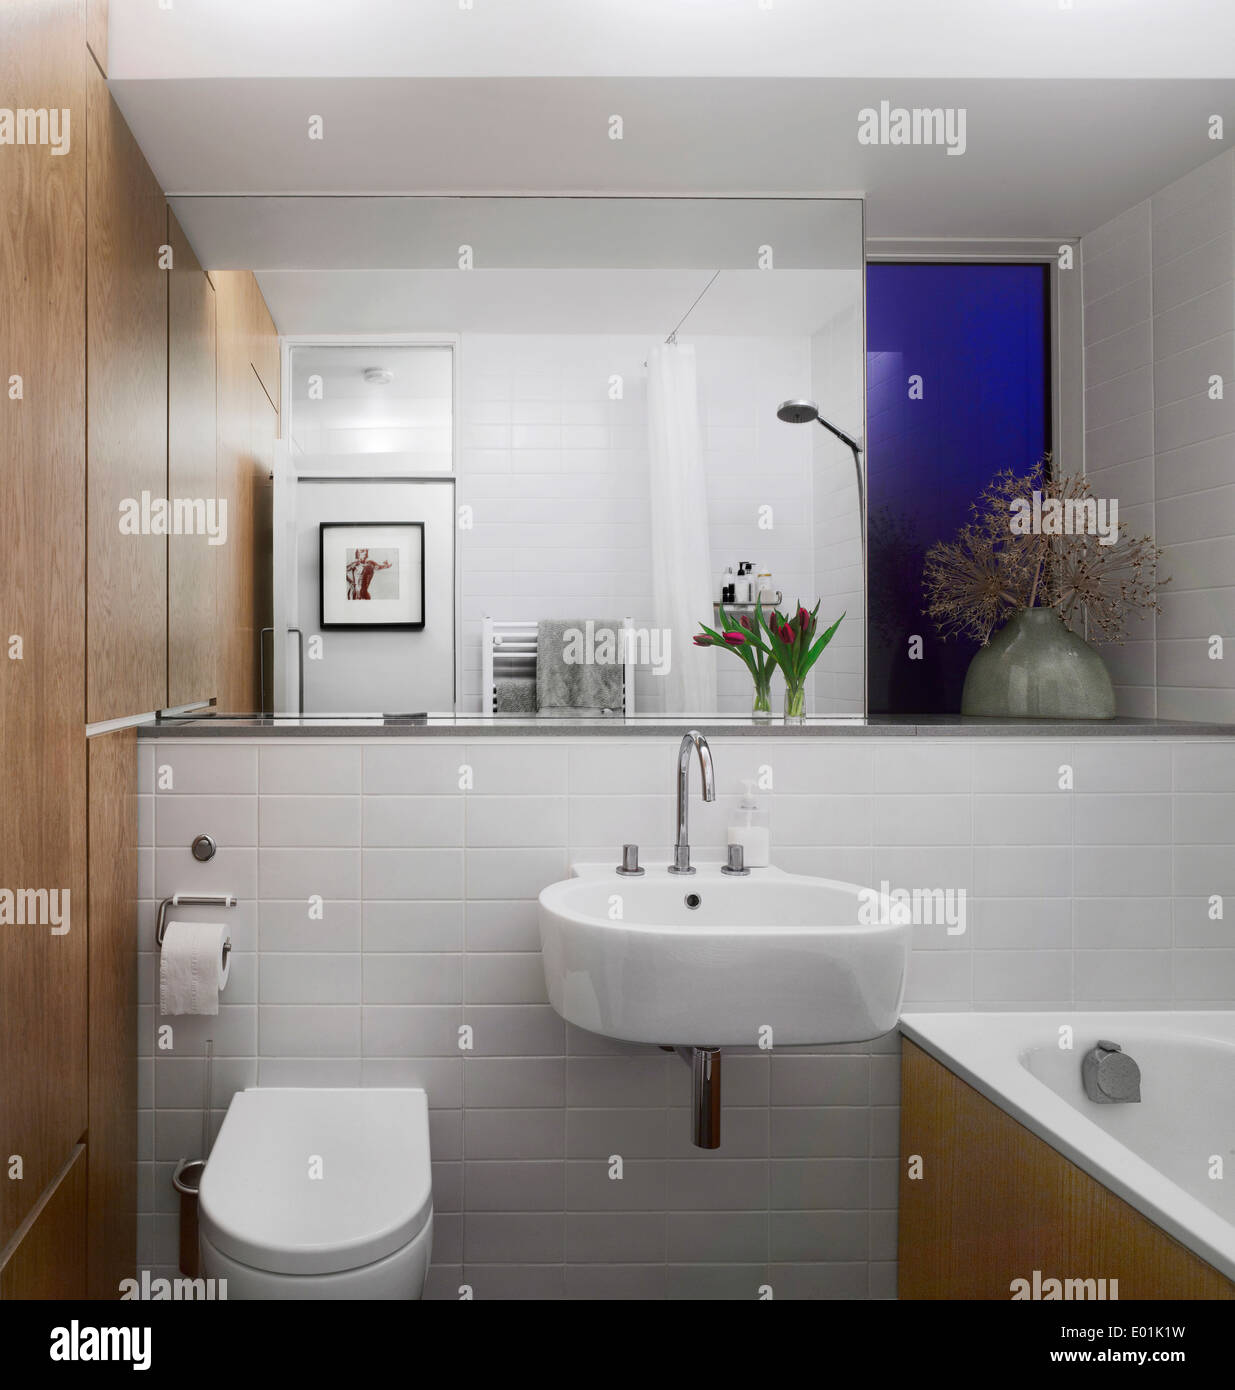 Bathroom in east dulwich london uk stock photo royalty for Bathroom builders east london